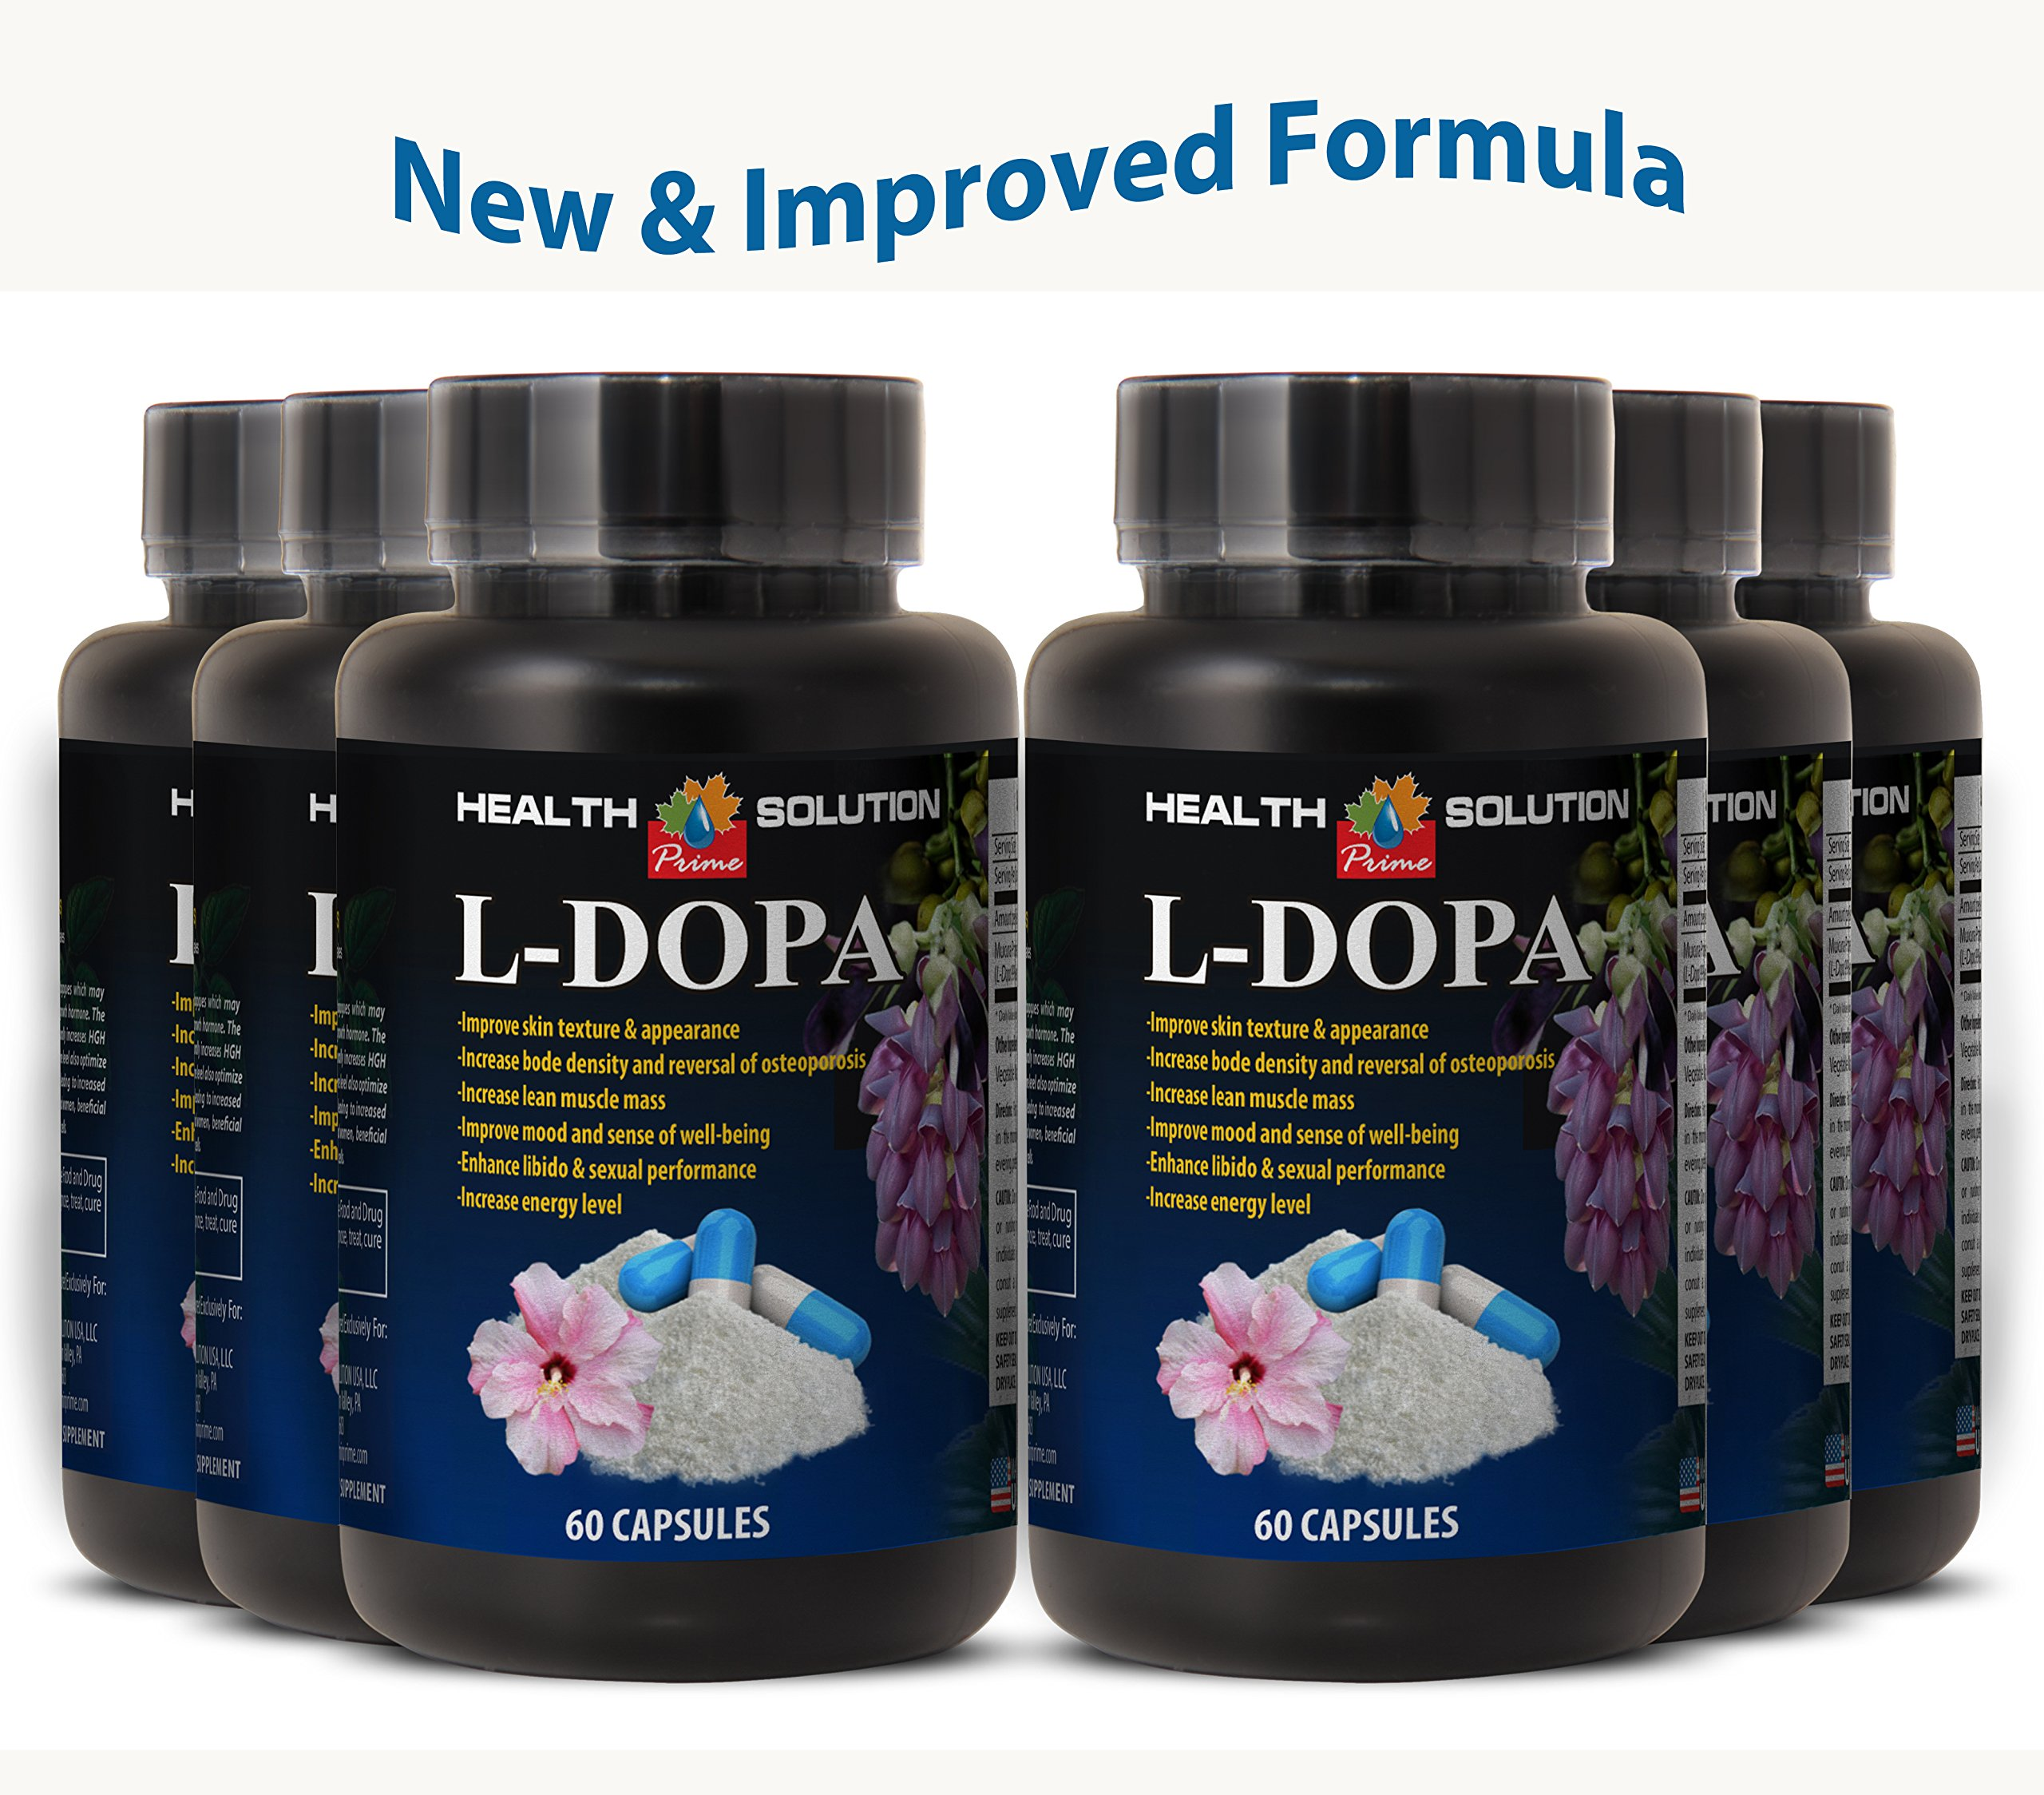 Organic macuna pruriens - L-DOPA 350 MG MUCUNA PRURIENS EXTRACT 99% - boost libido and energy (6 Bottles)